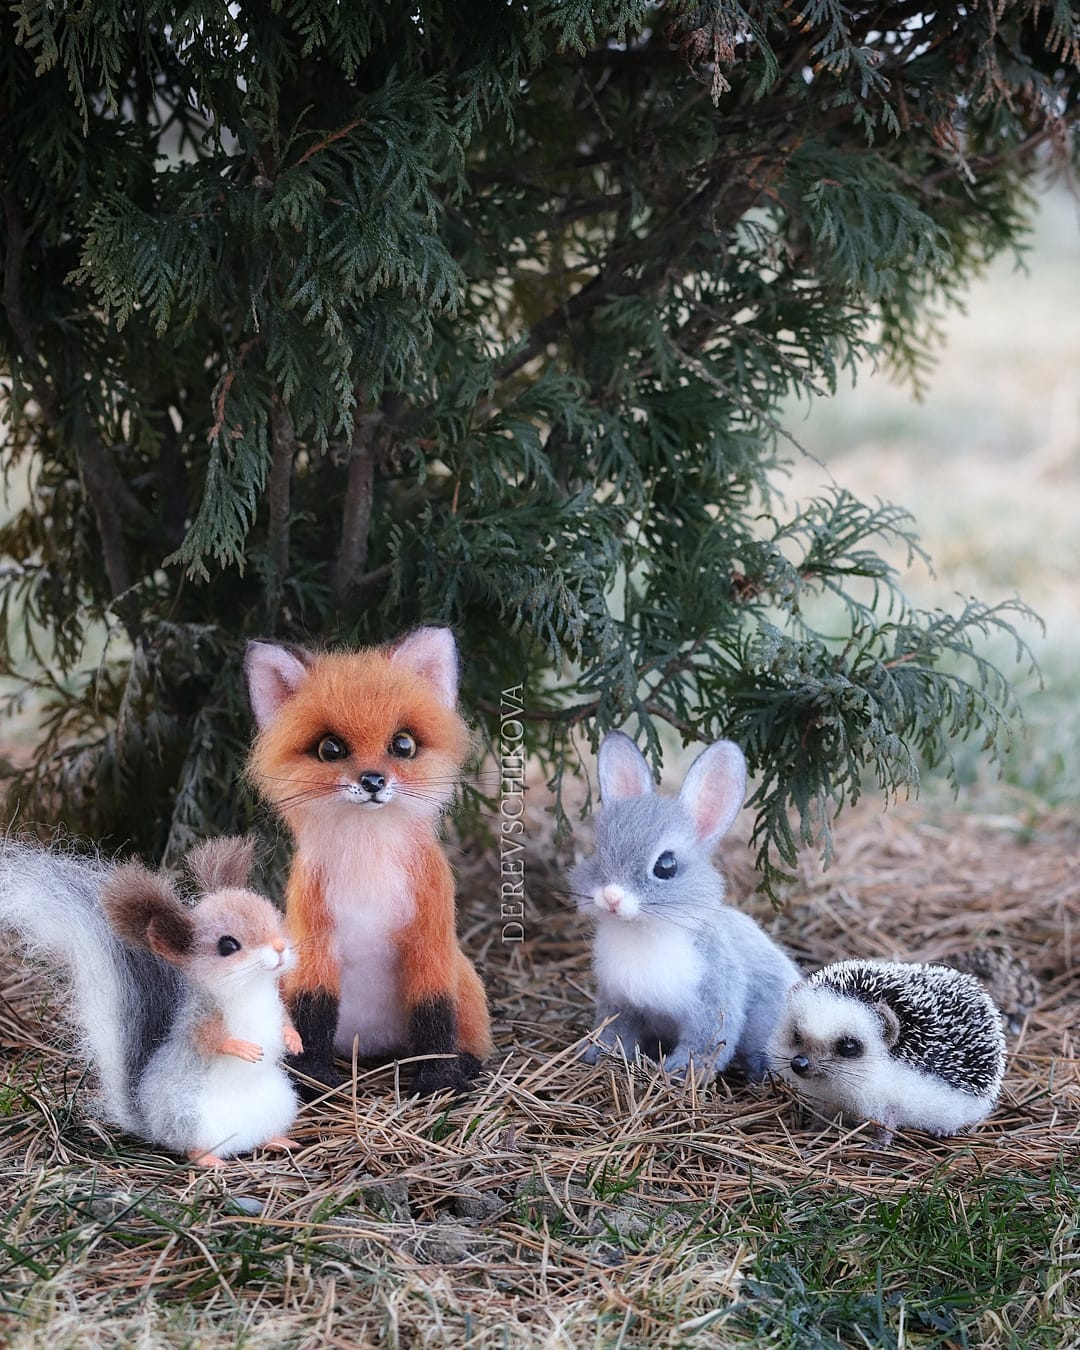 felting sculpture animals derevschikova